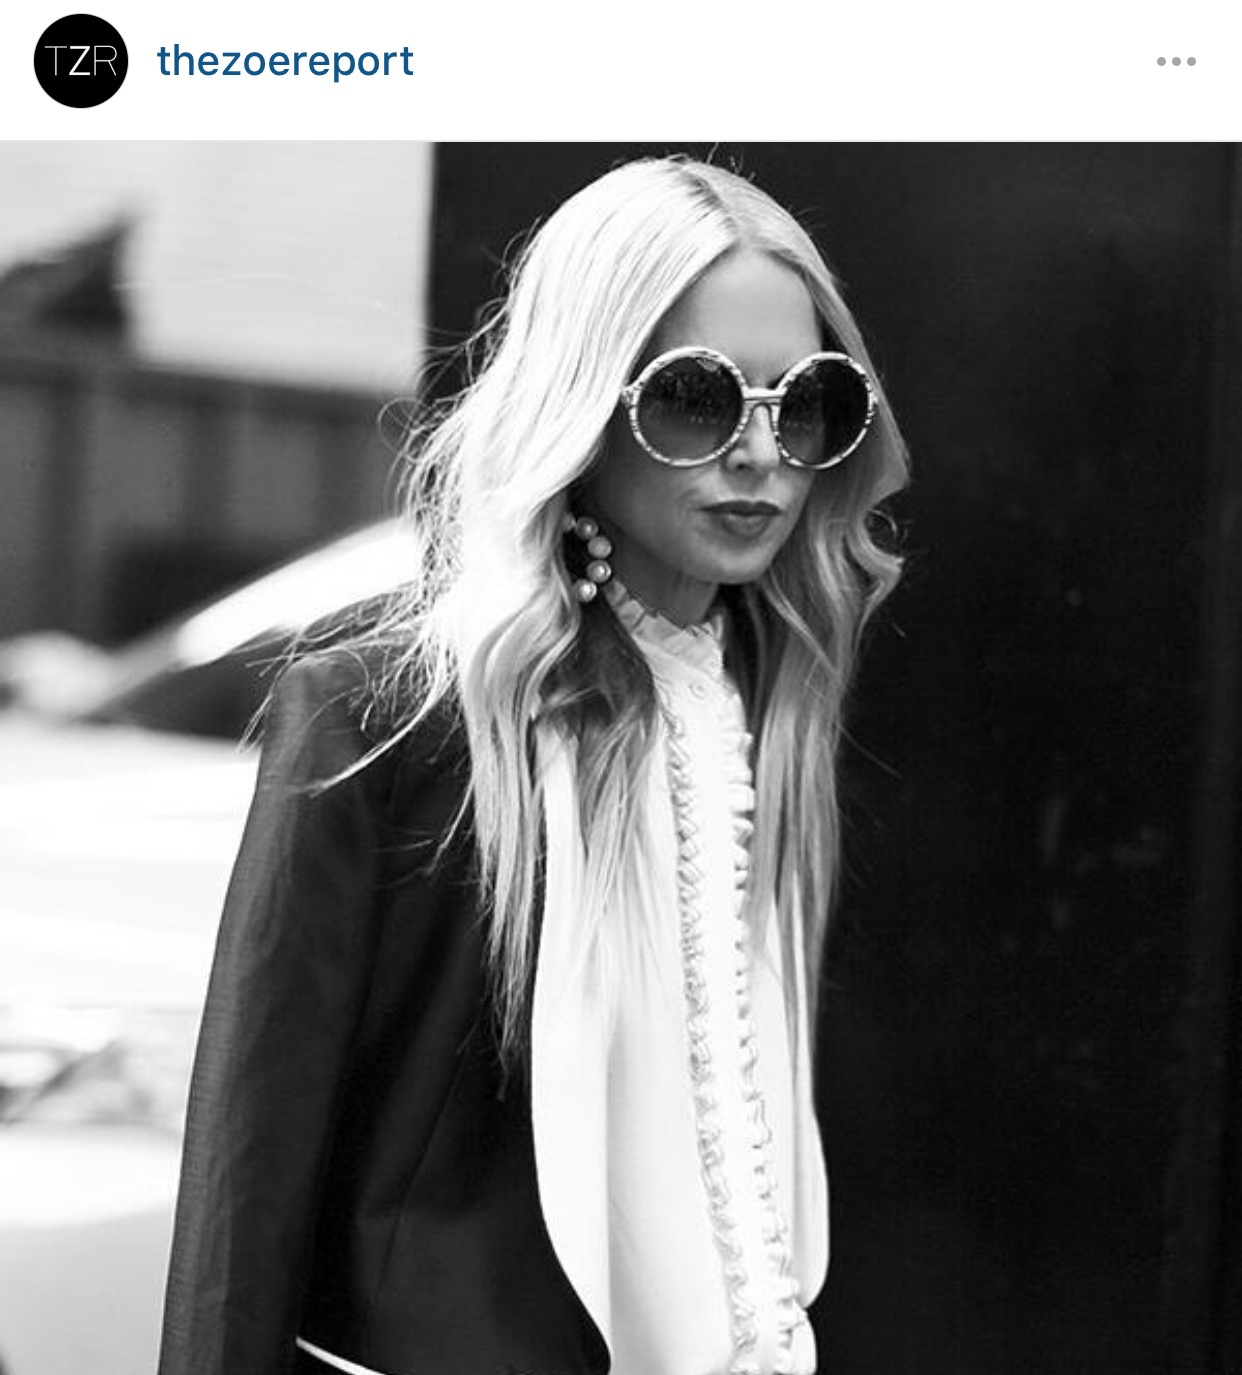 Glam fashion icon Rachel Zoe rocking the beachy waves with straight ends.